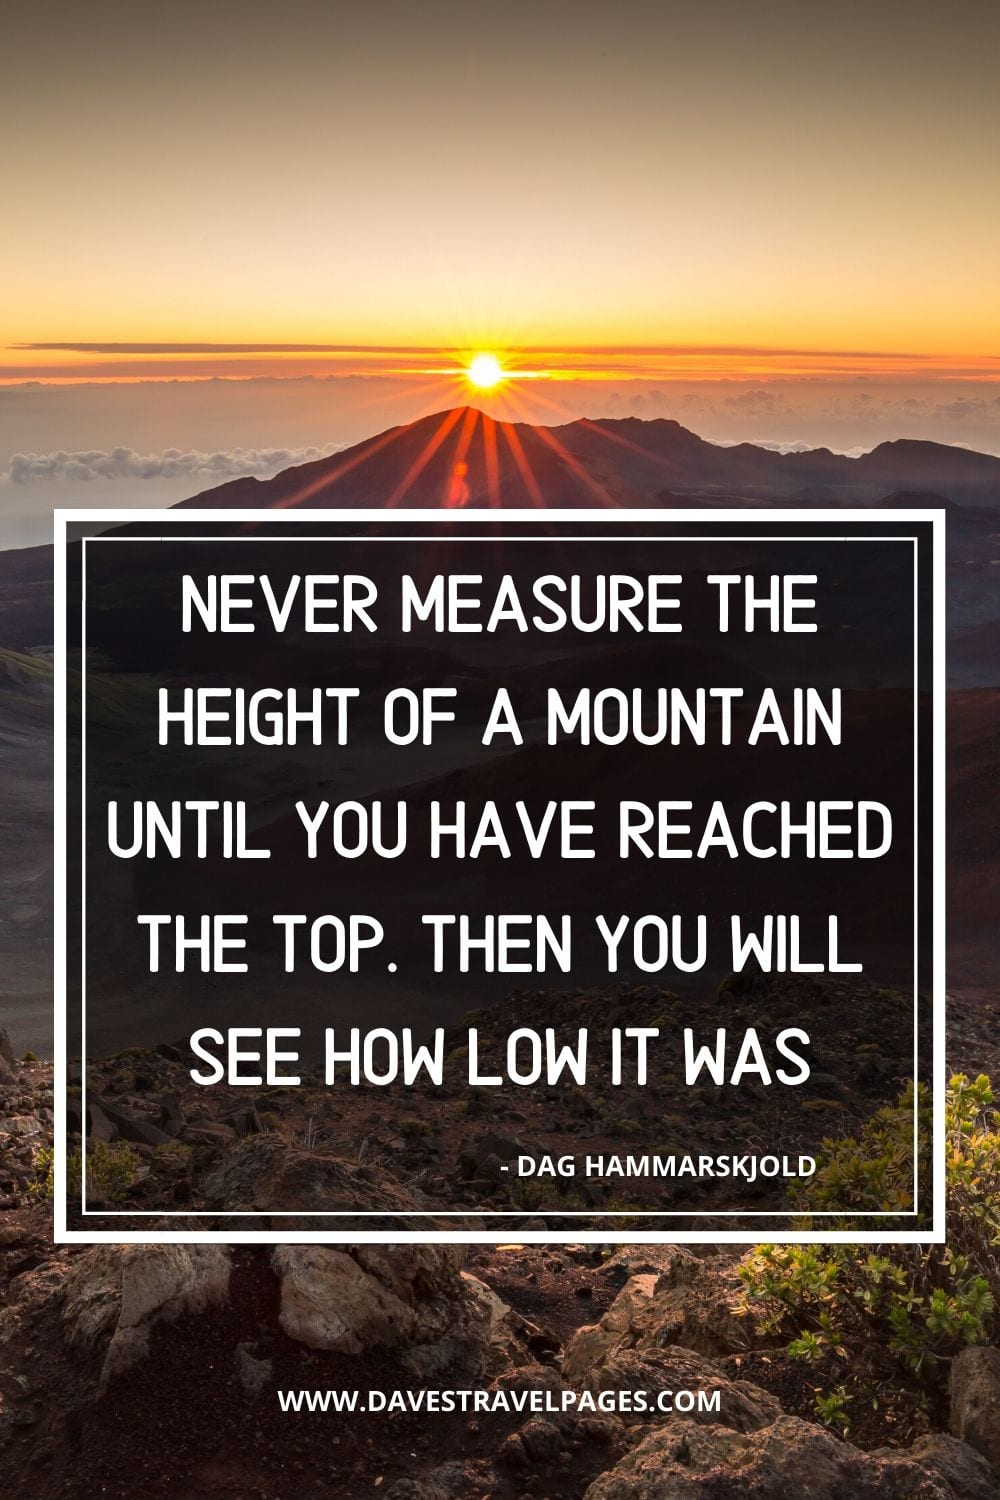 Goal setting quotes: Never measure the height of a mountain until you have reached the top. Then you will see how low it was - Dag Hammarskjold